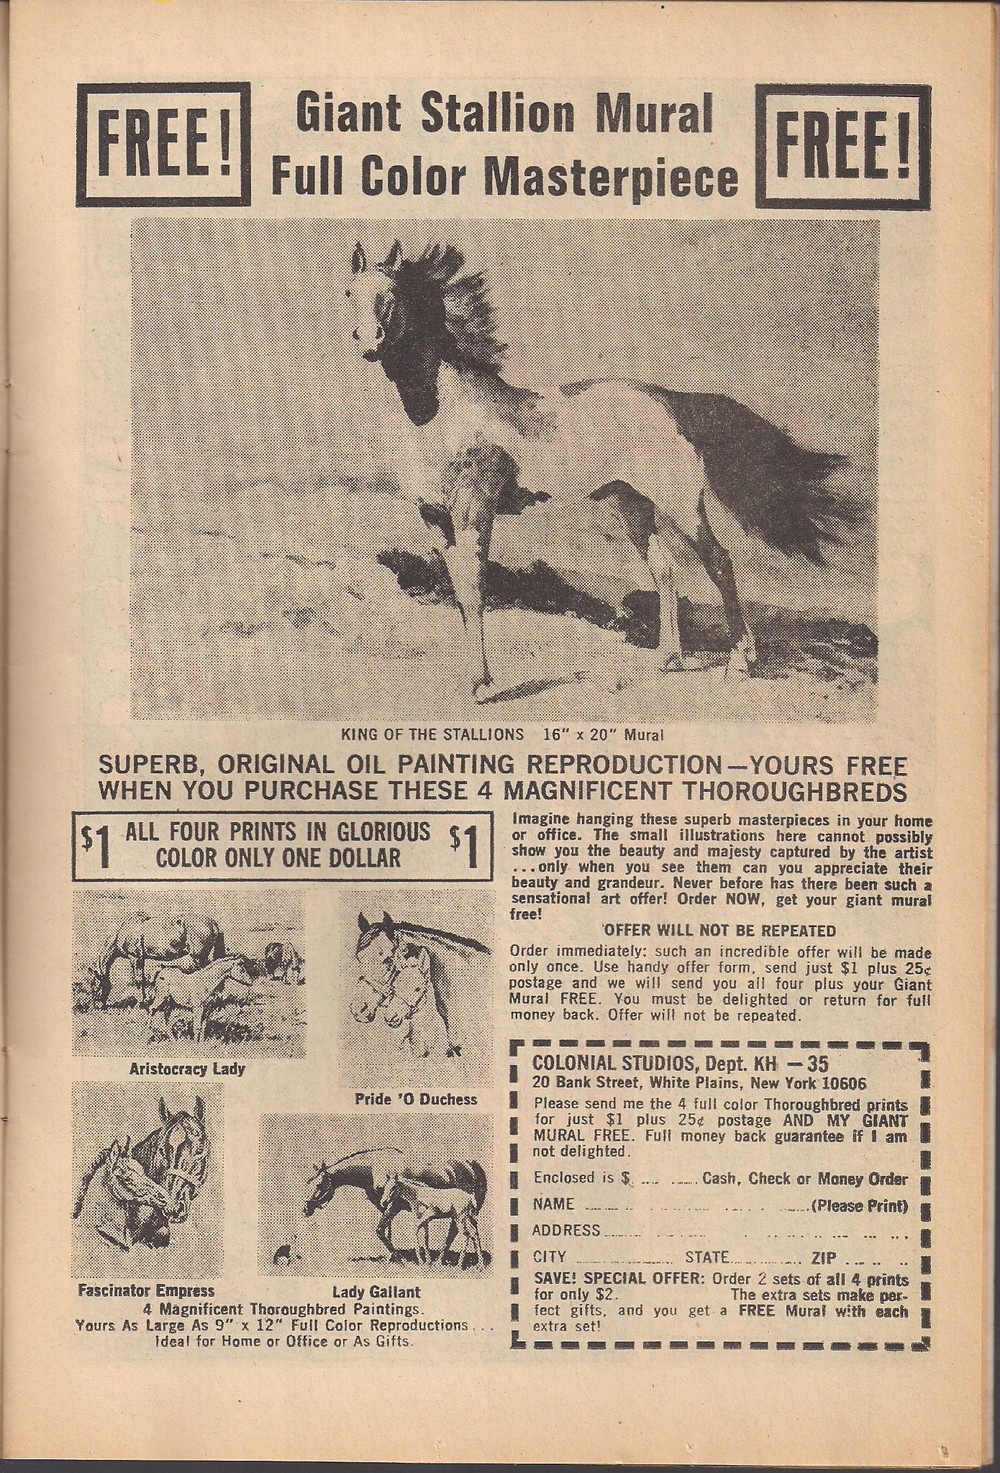 Four prints of horses for a dollar!?